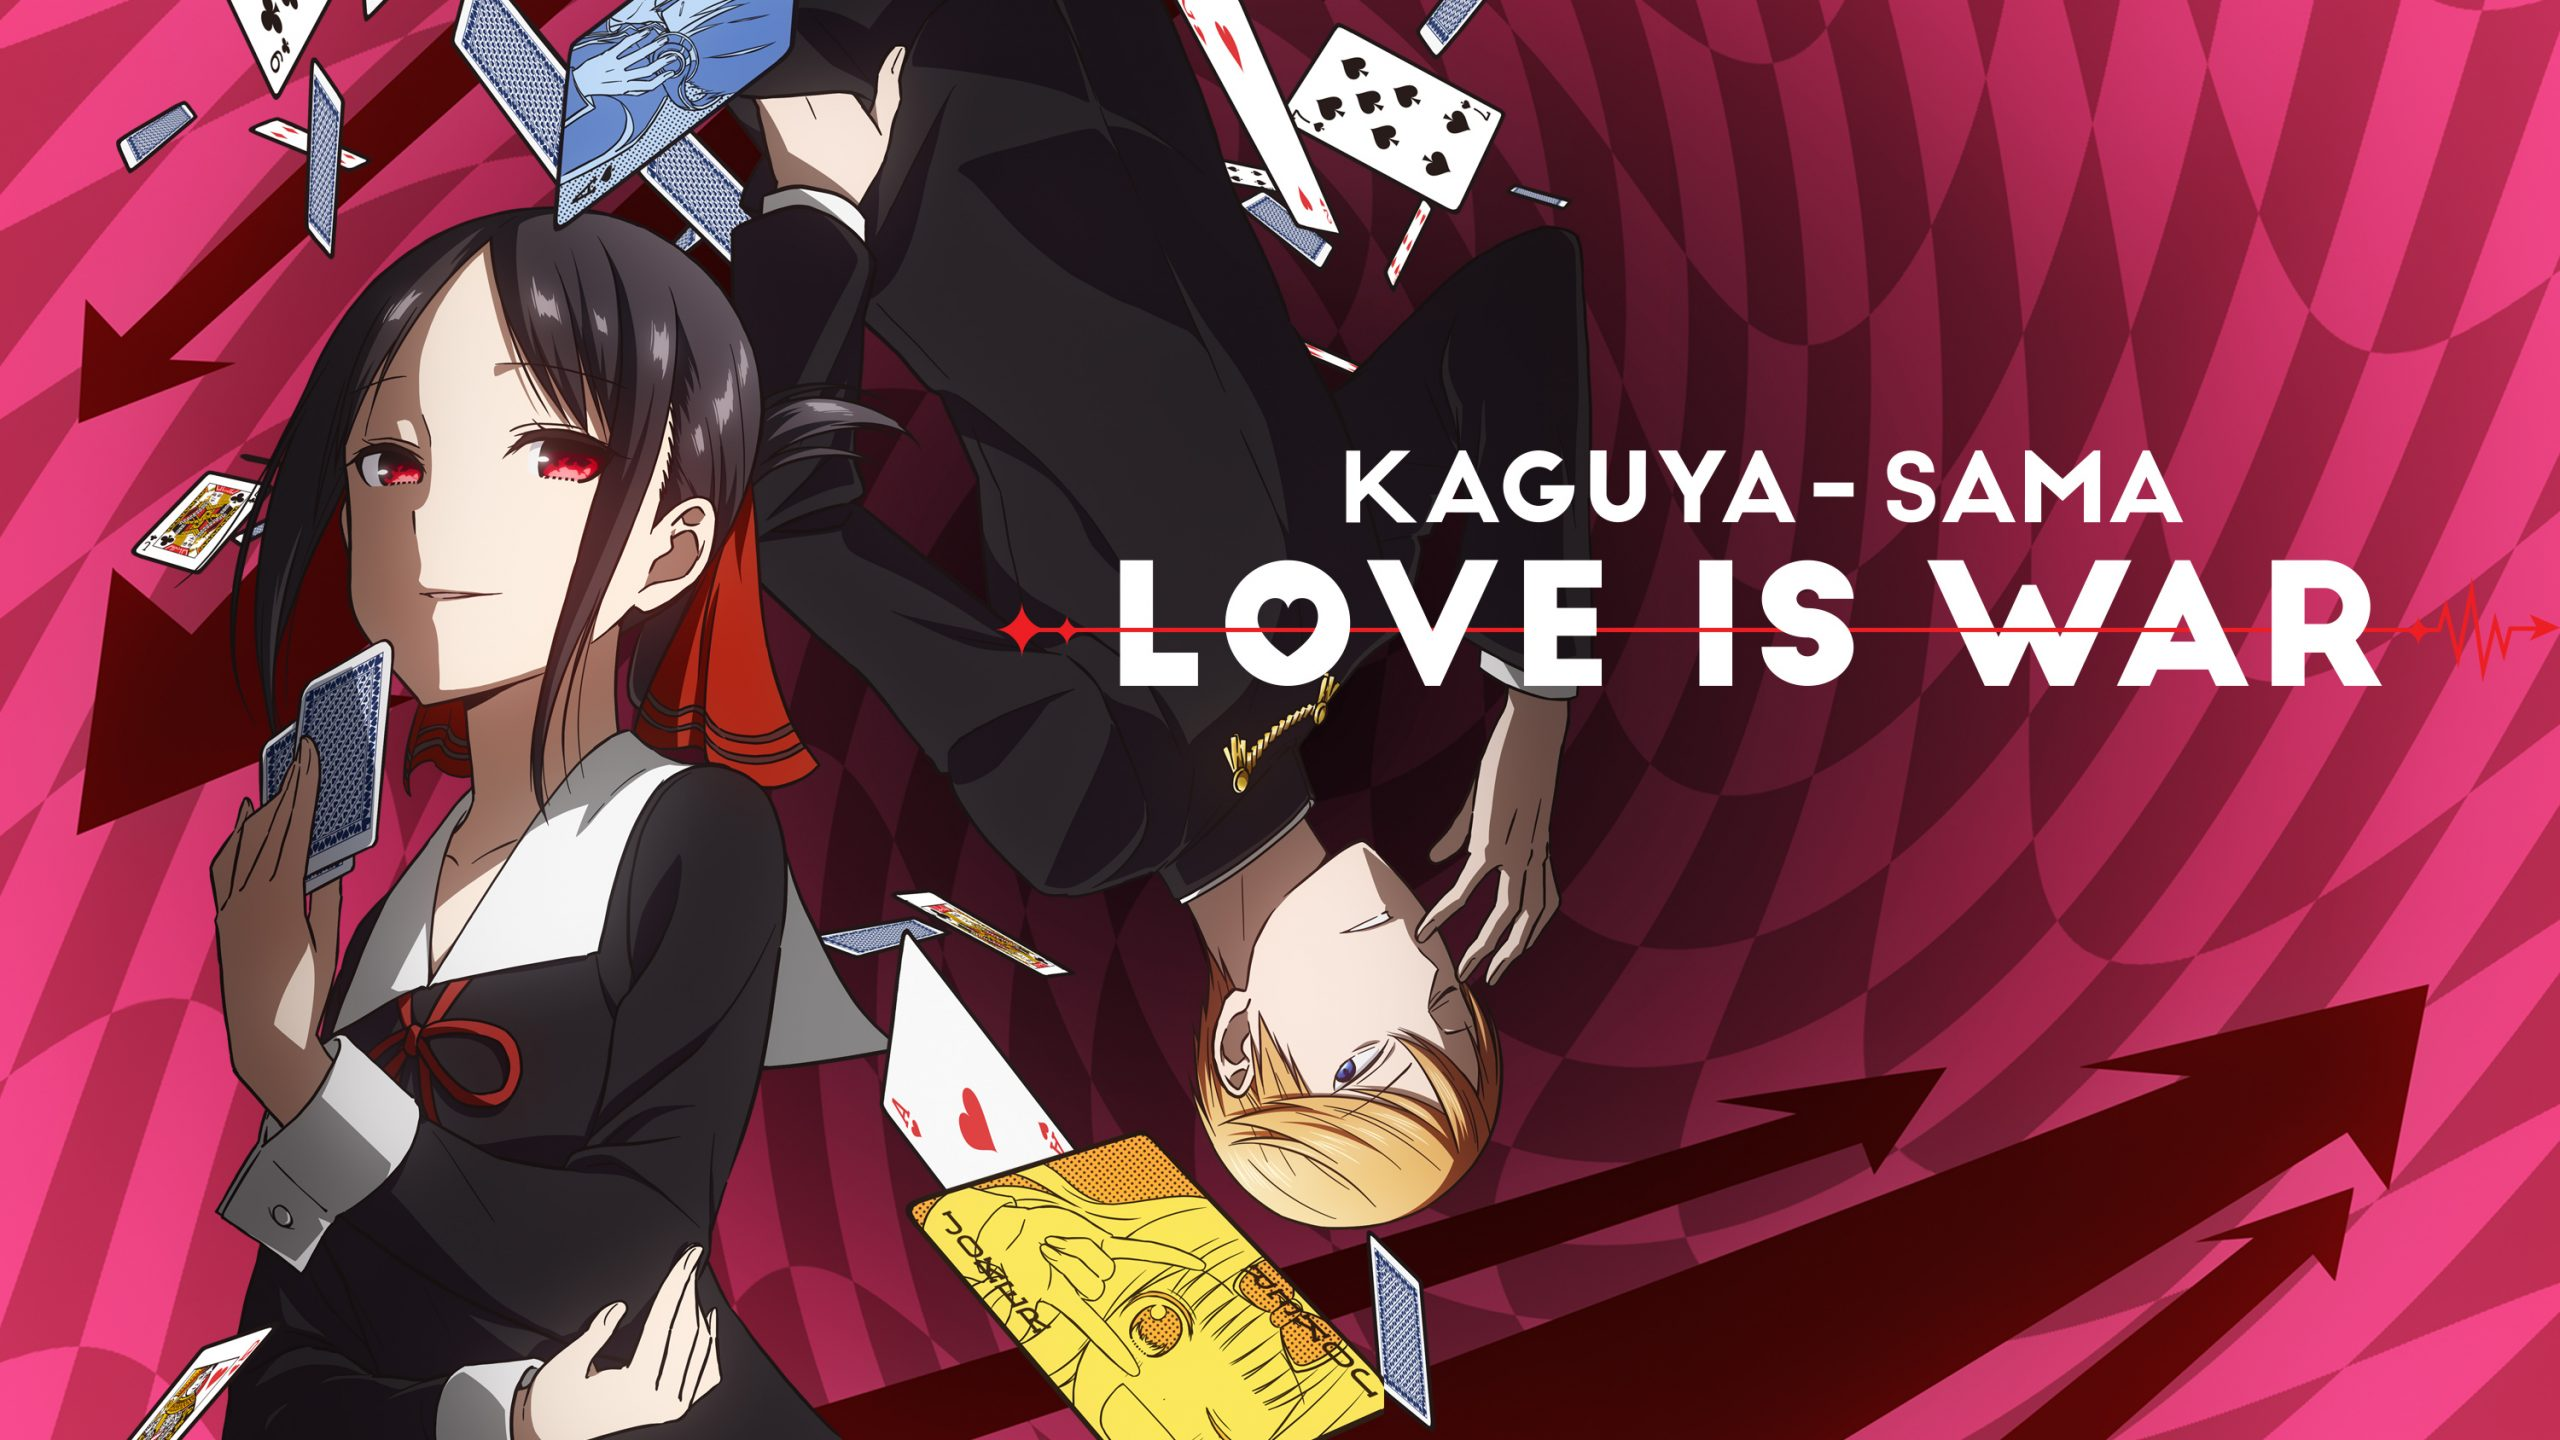 Kaguya-sama- Love Is War Chapter 200 Release Date, Raw Scans and Read Online